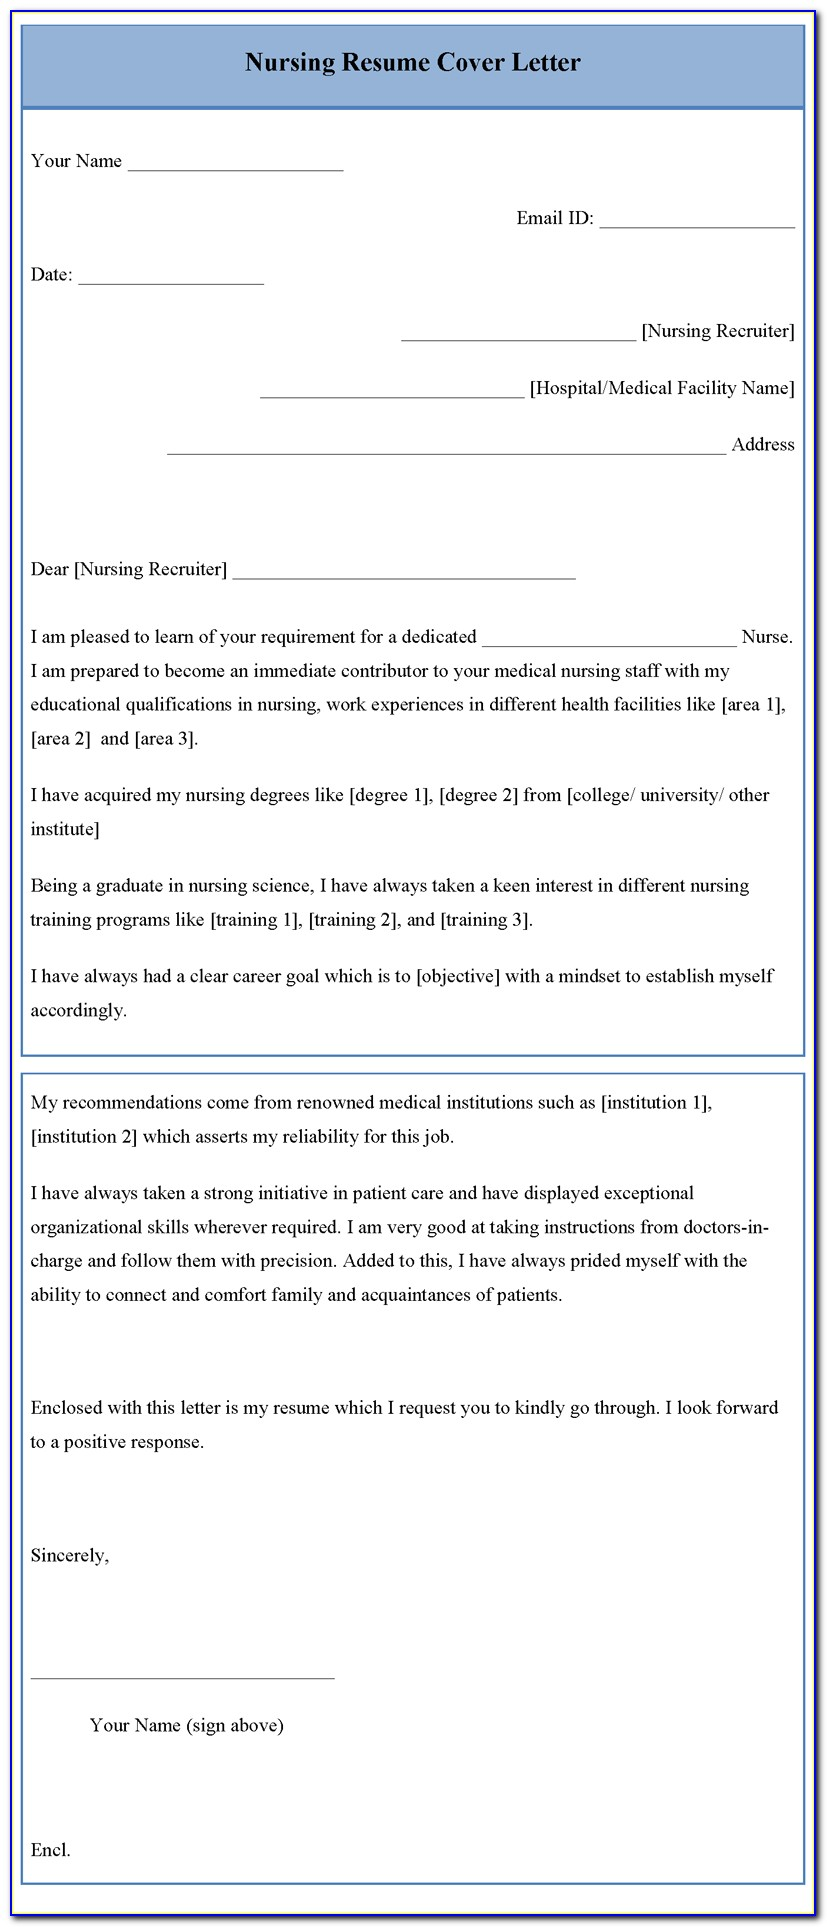 Templates For Resume Cover Letters